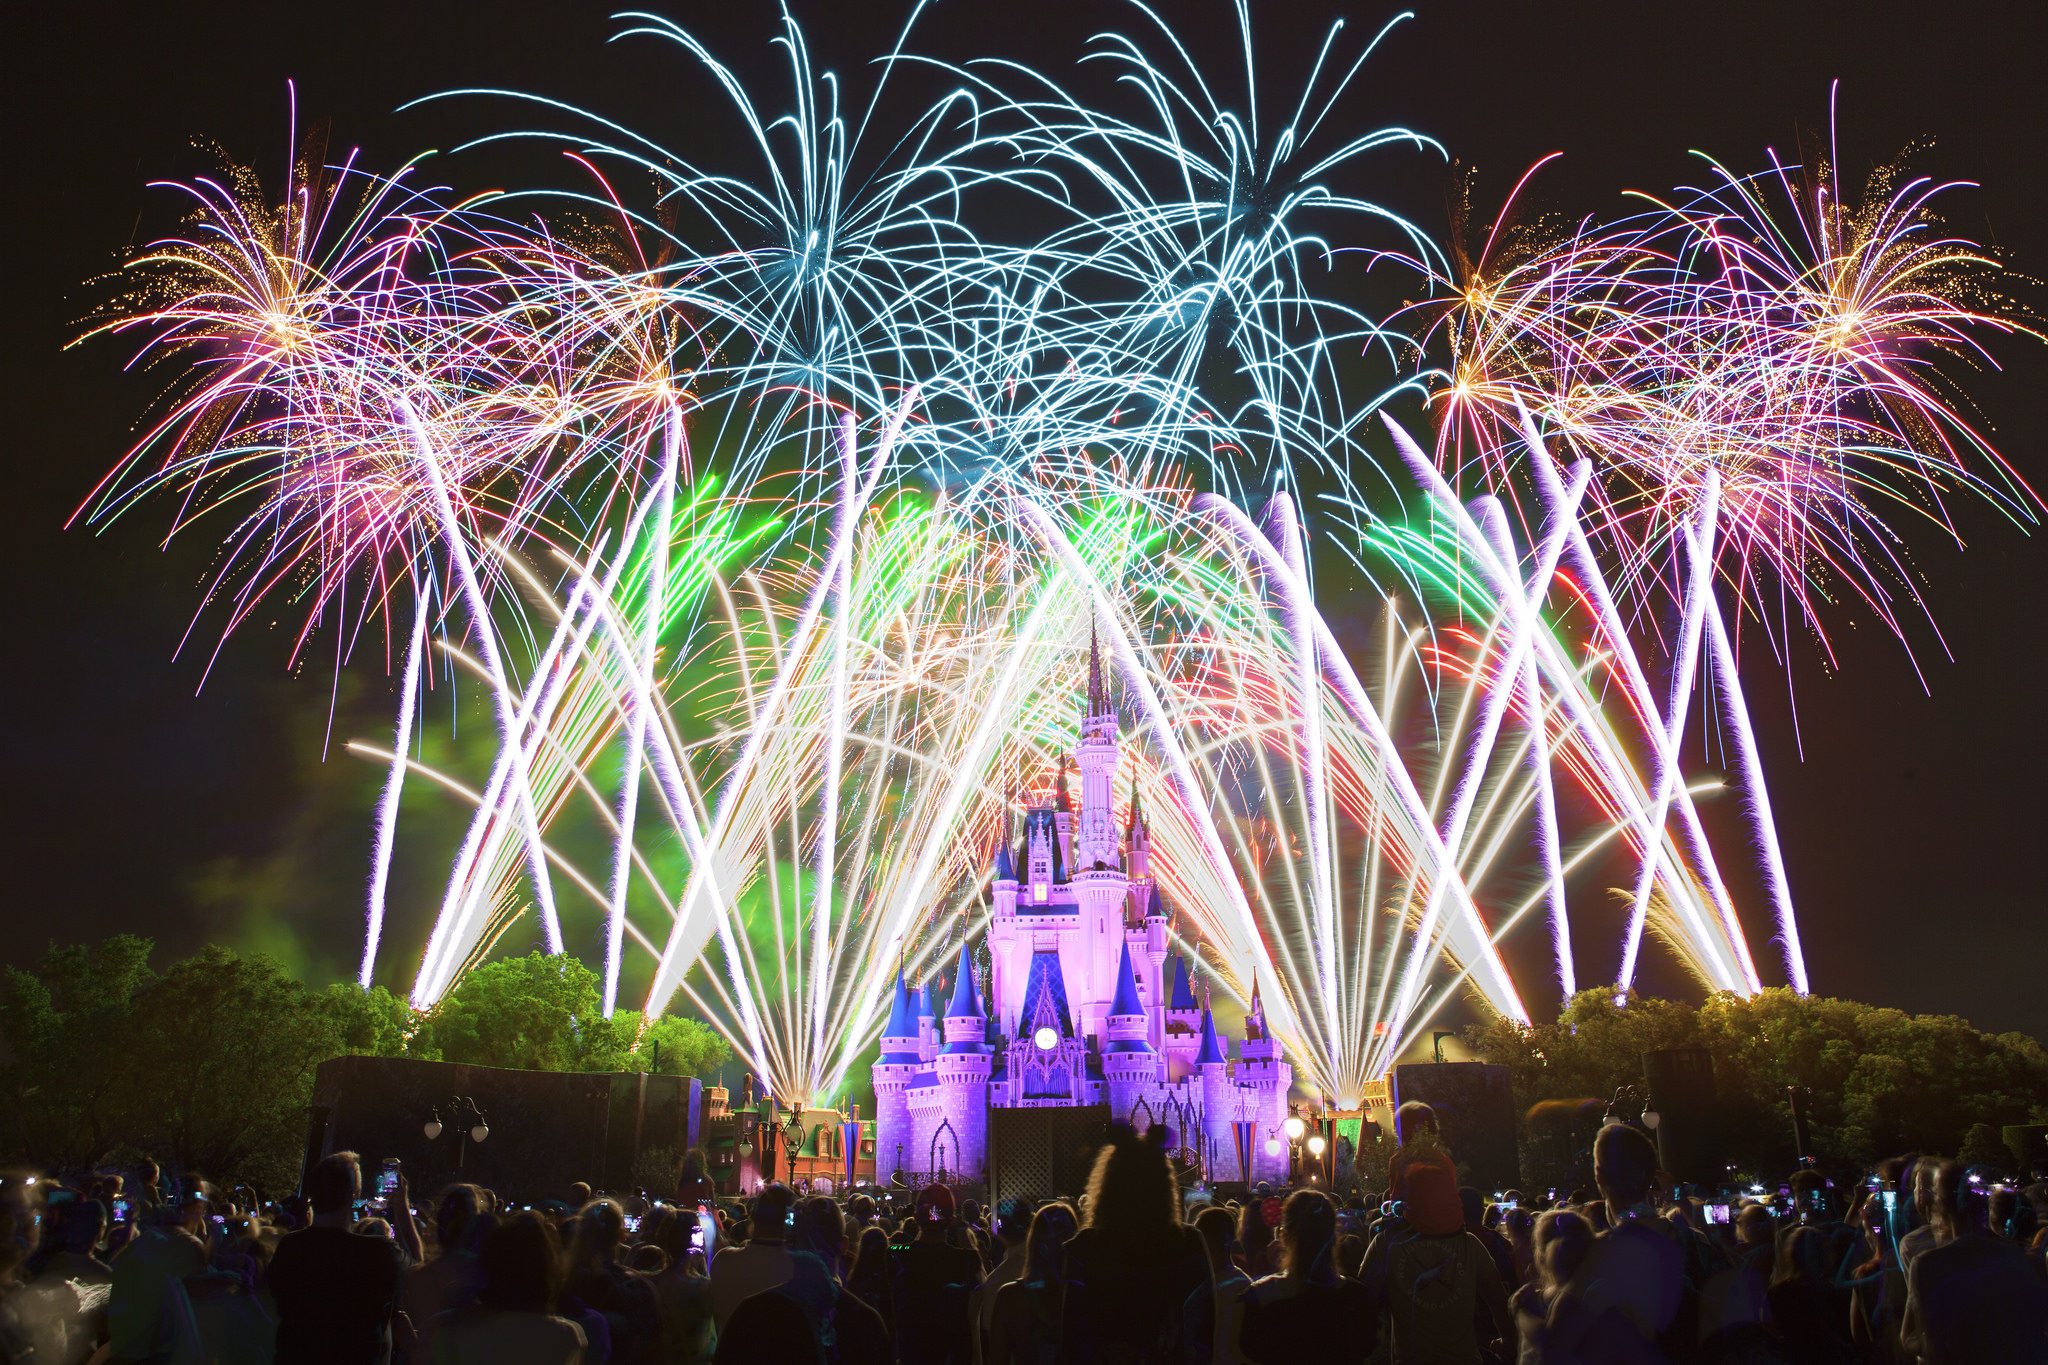 Walt Disney World Magic Kingdom Wishes Fireworks 2015 by Anthony Quintano is Licensed Under CC by 2.0